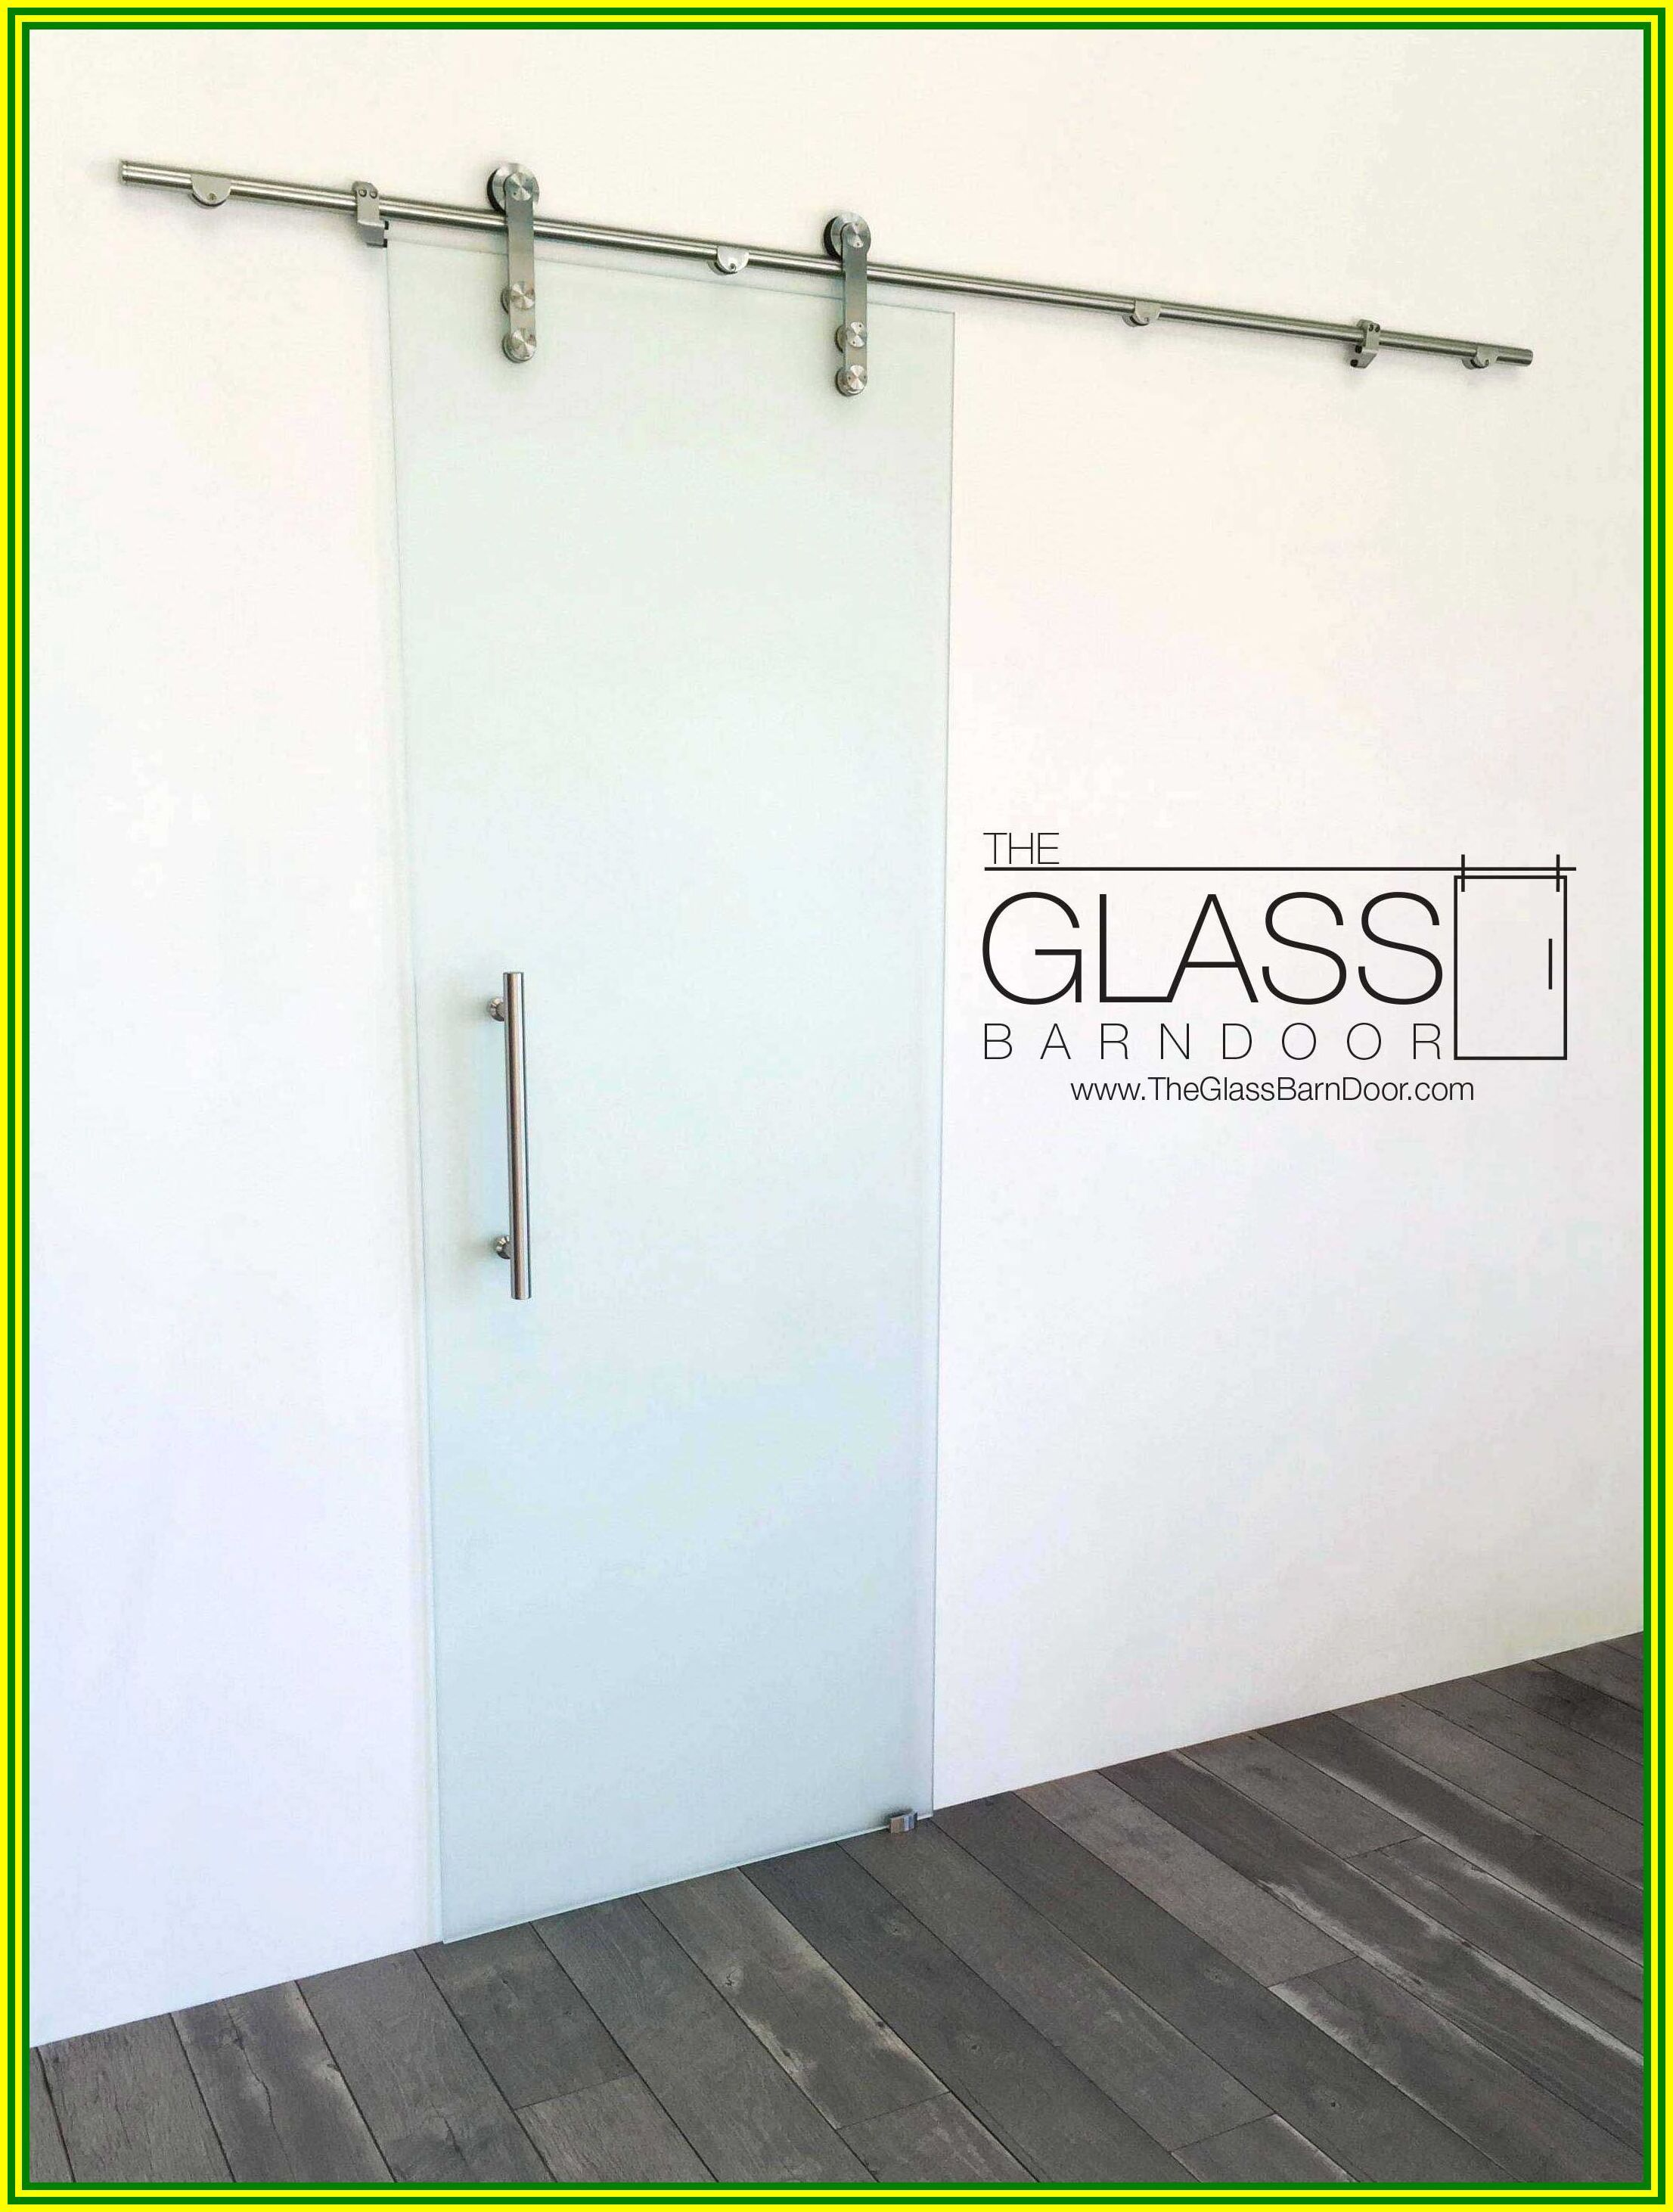 101 reference of Barn Door Metal glass in 2020 Glass